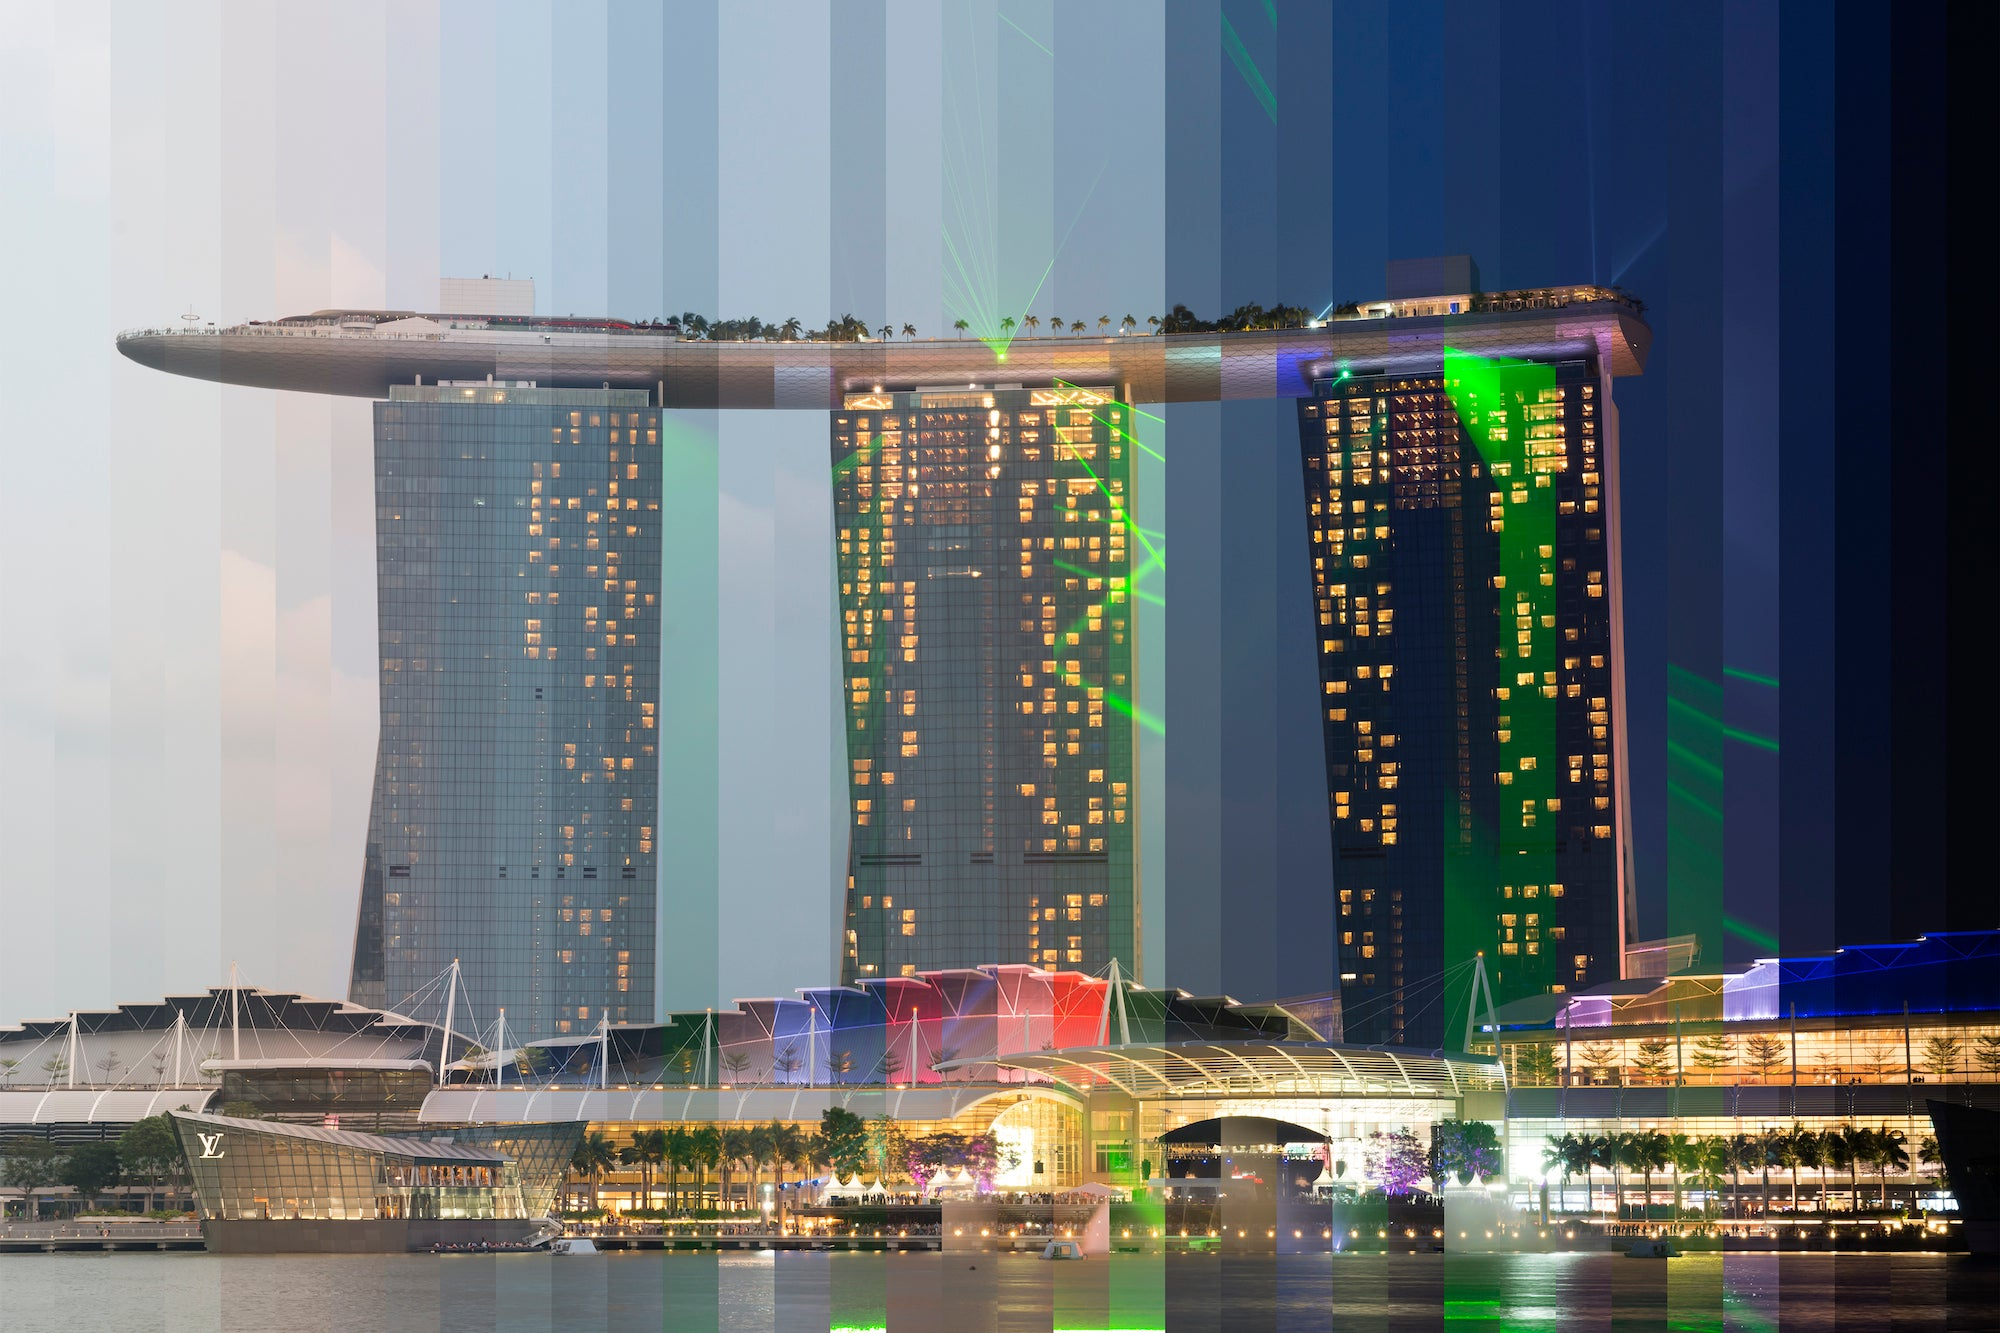 Here's what famous buildings look like from day to night in one photo